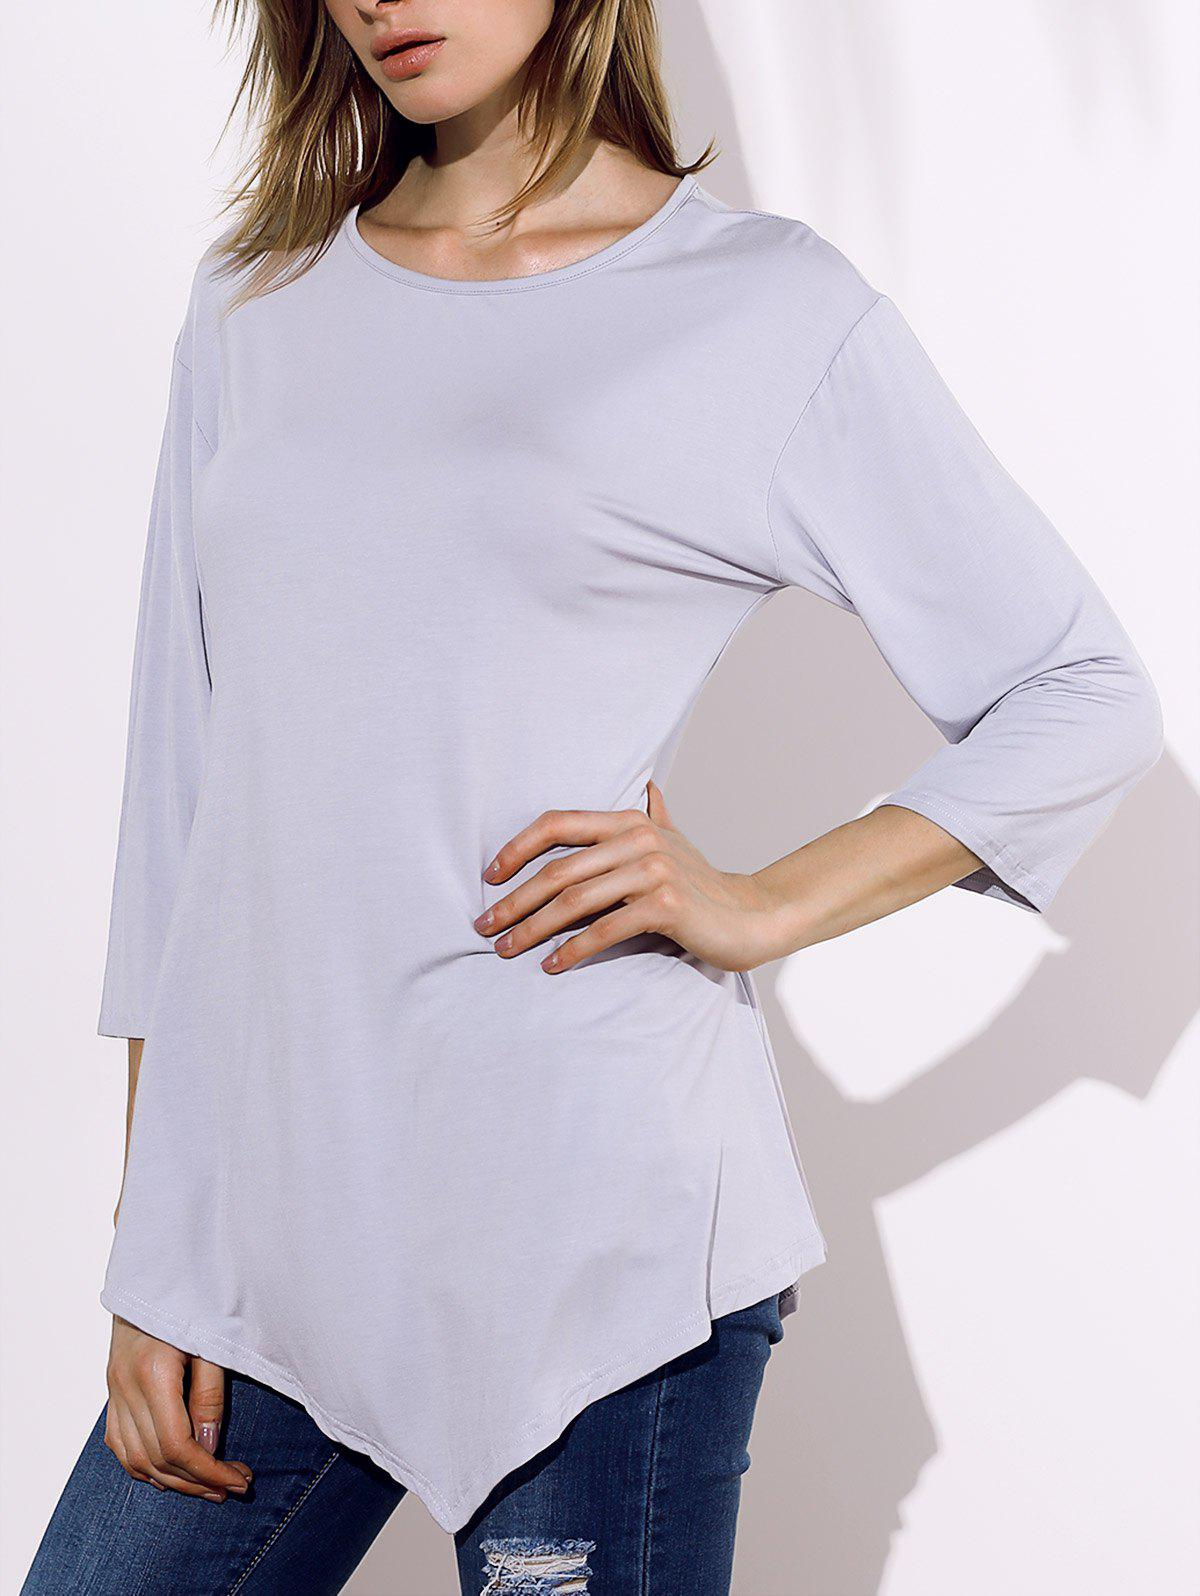 Casual 3/4 Sleeve Round Collar Irregular Solid Color Women's T-Shirt - GRAY 5XL